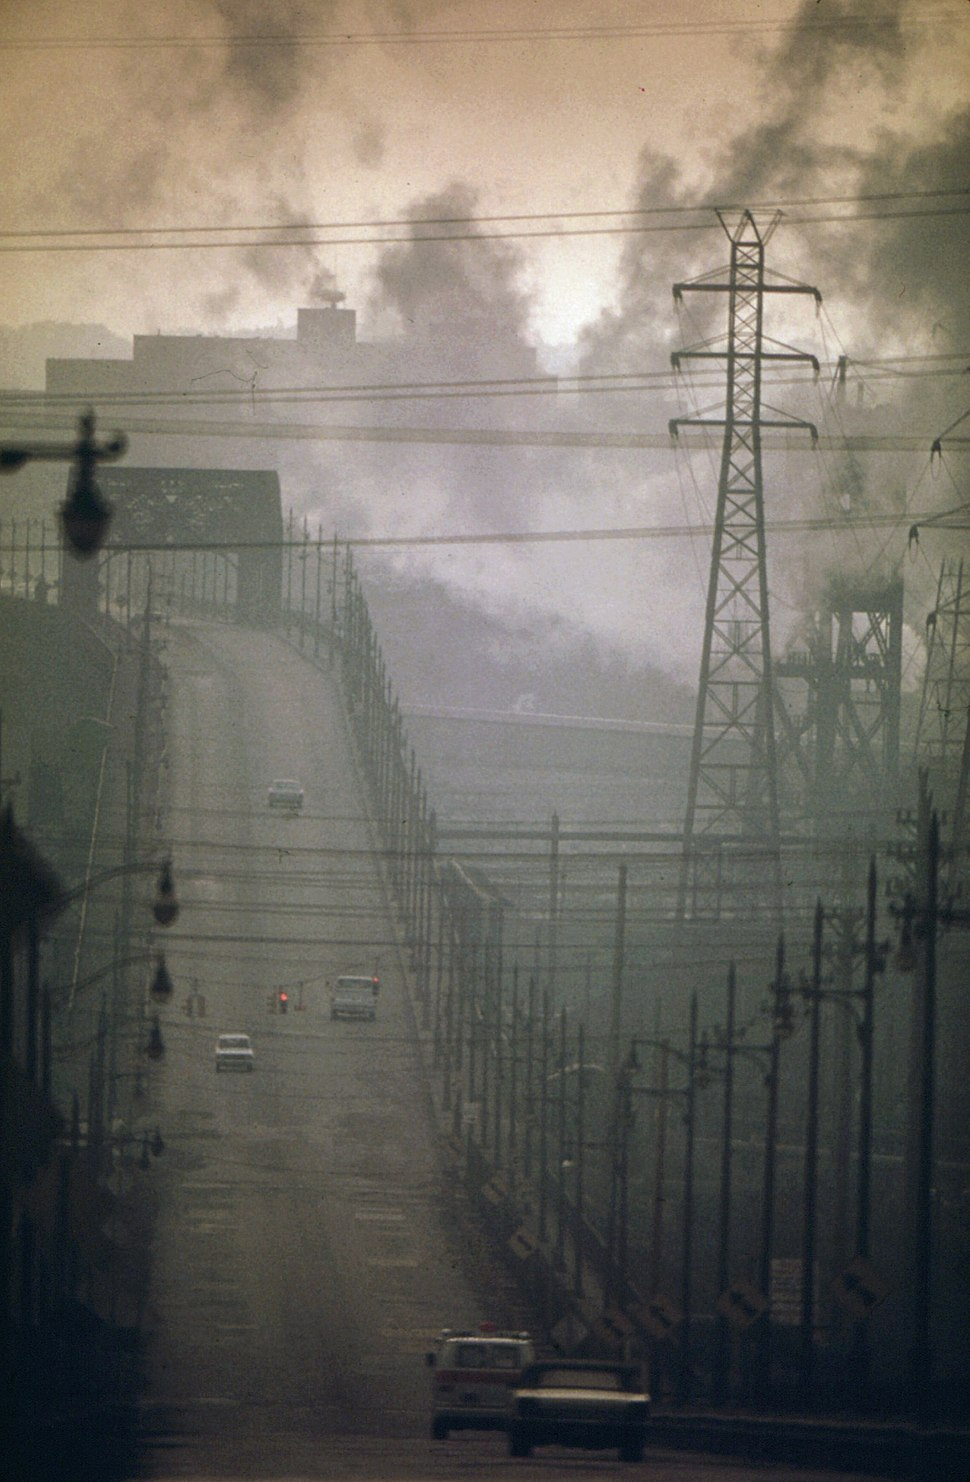 DARK CLOUDS OF FACTORY SMOKE OBSCURE CLARK AVENUE BRIDGE - NARA - 550179